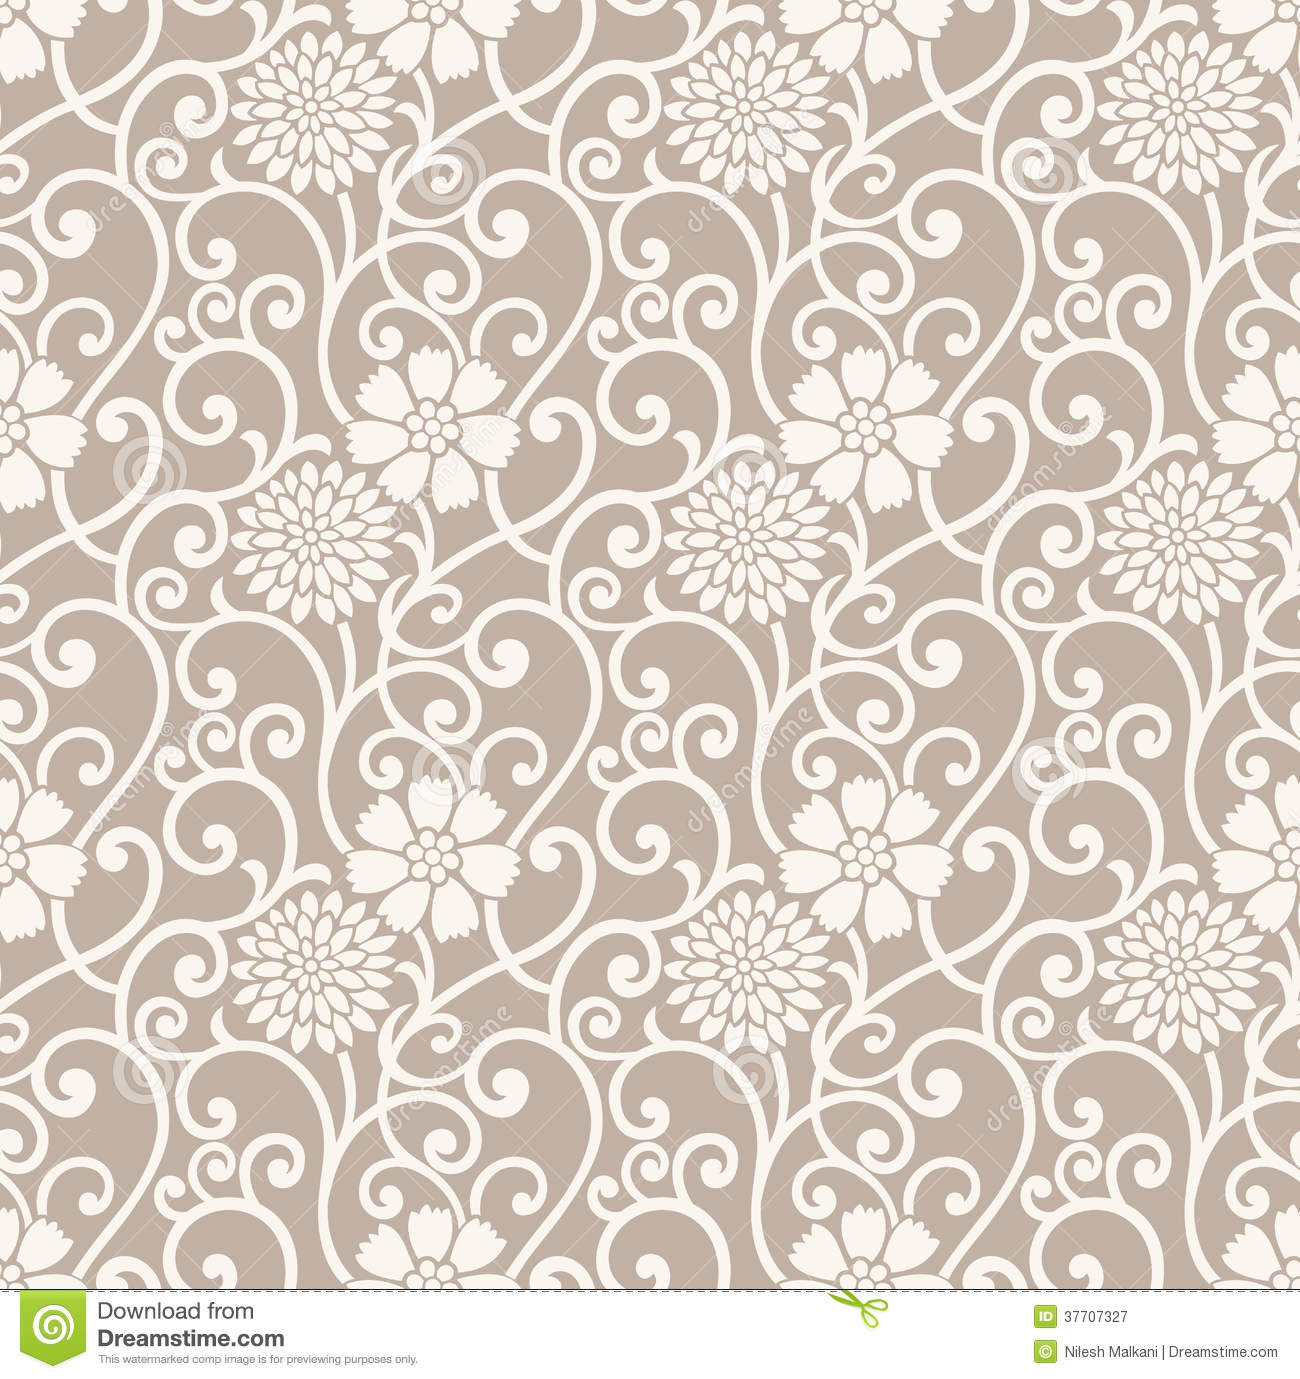 Fancy Wallpaper Fancy Floral Seamless Wallpaper Royalty Free Stock Photography